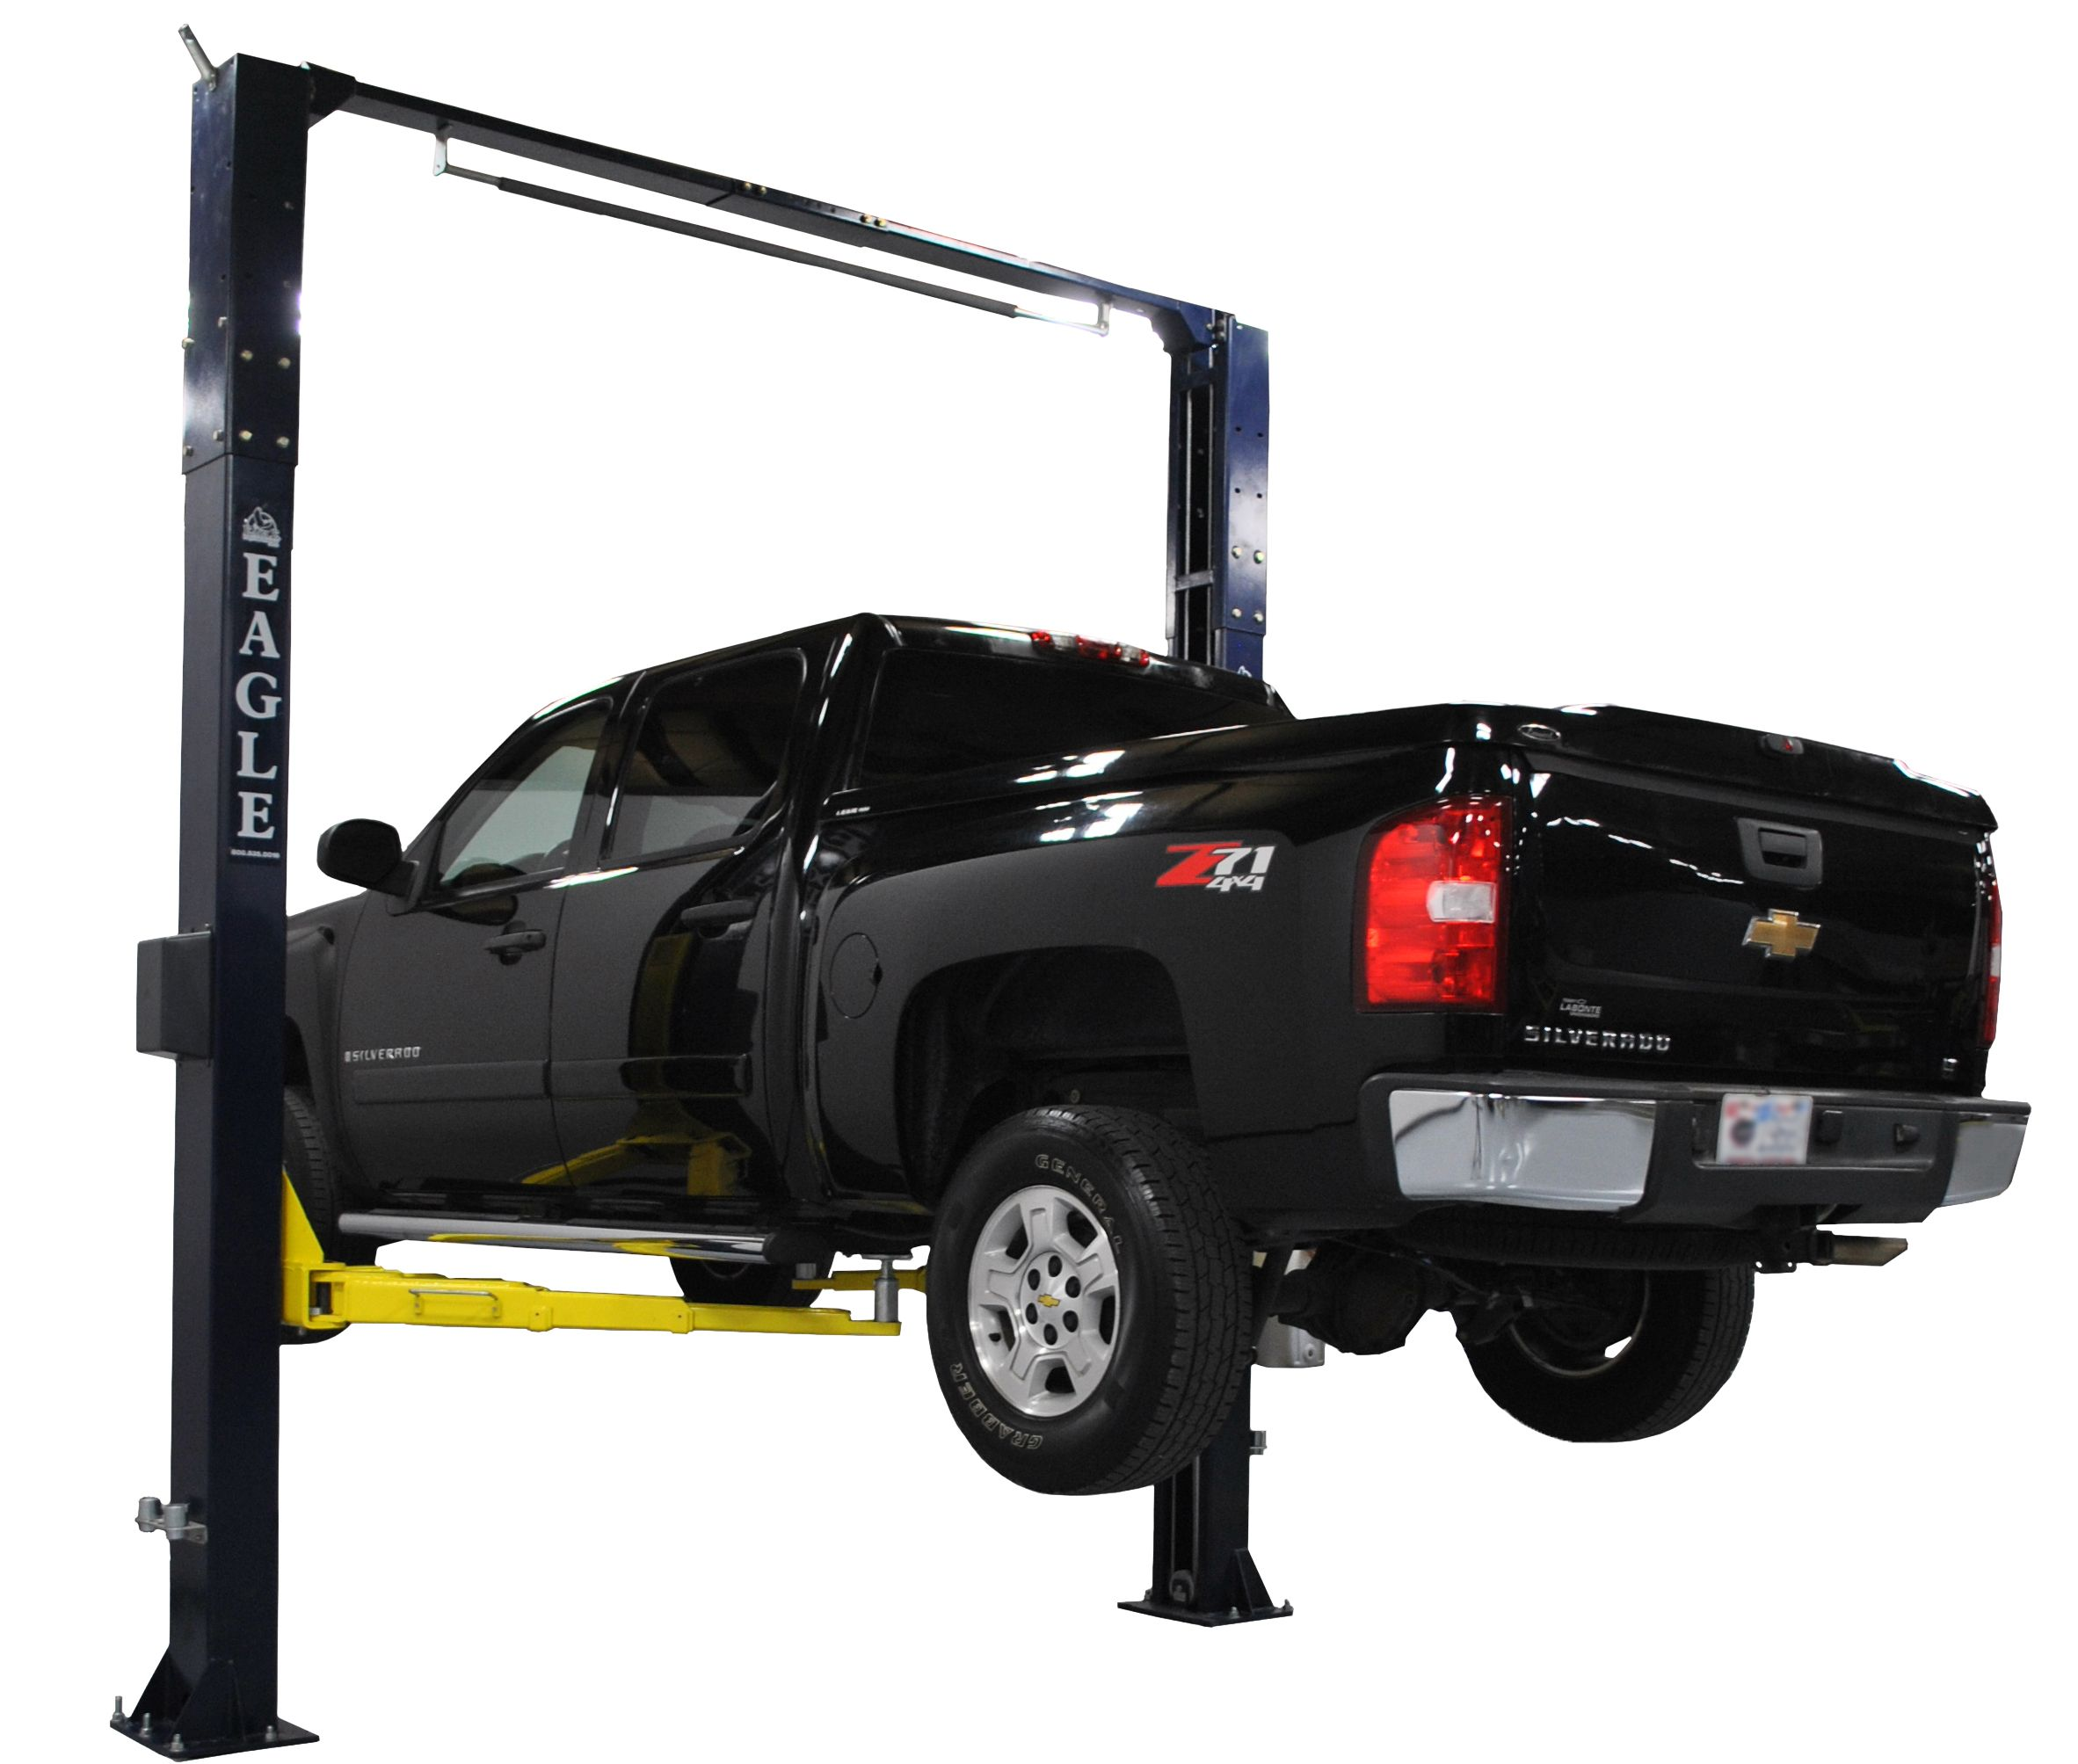 Certified 2 Post 10 000lb Car Lift From Eagle Equipment